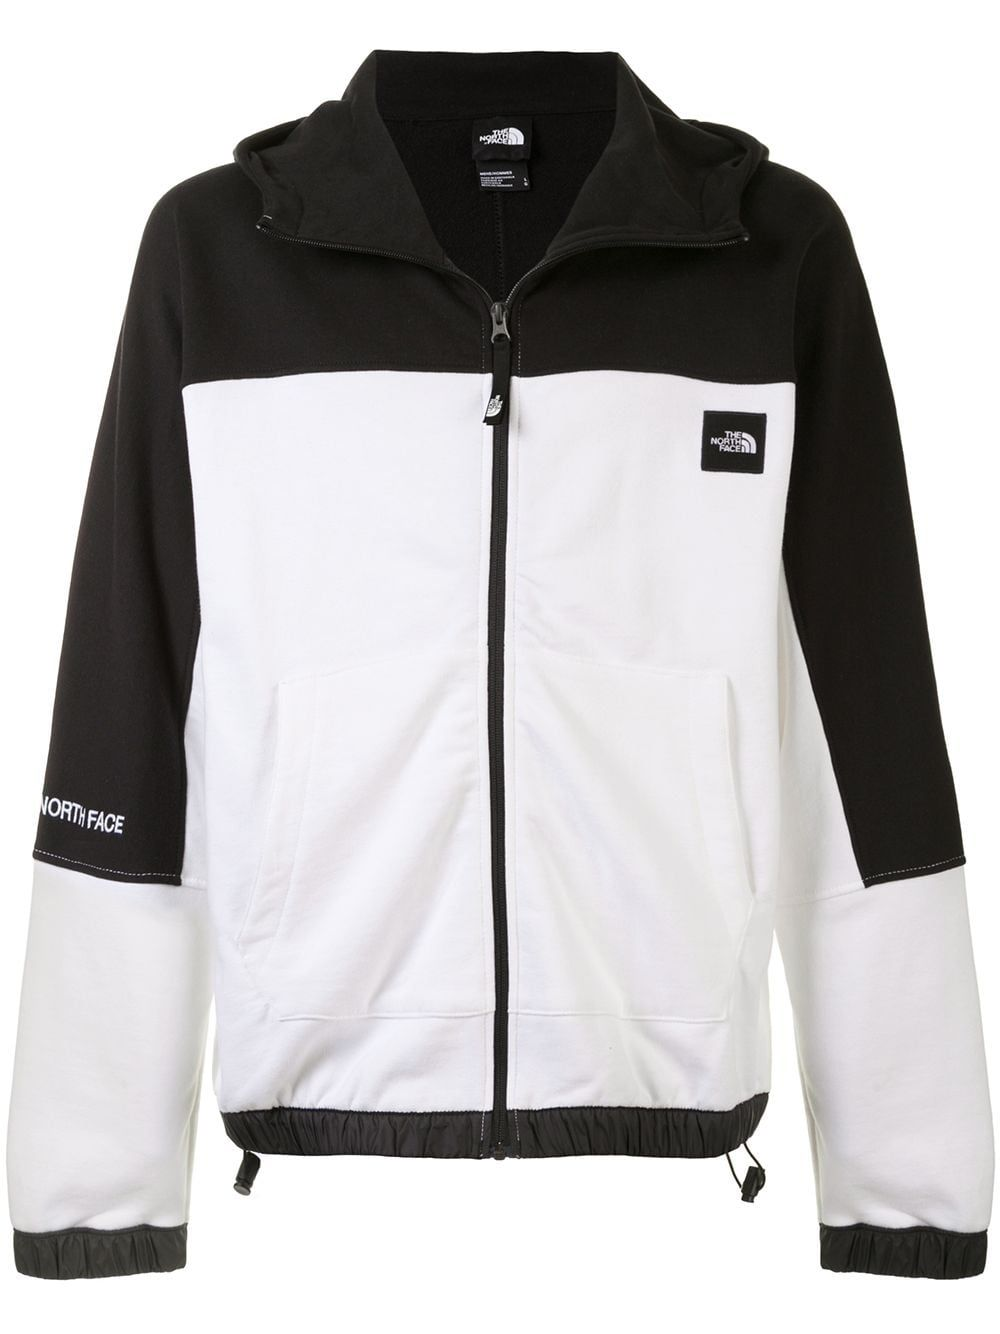 The North Face Geary Full Zip Hooded Jacket Farfetch Designer Jackets For Men The North Face Hooded Jacket [ 1334 x 1000 Pixel ]